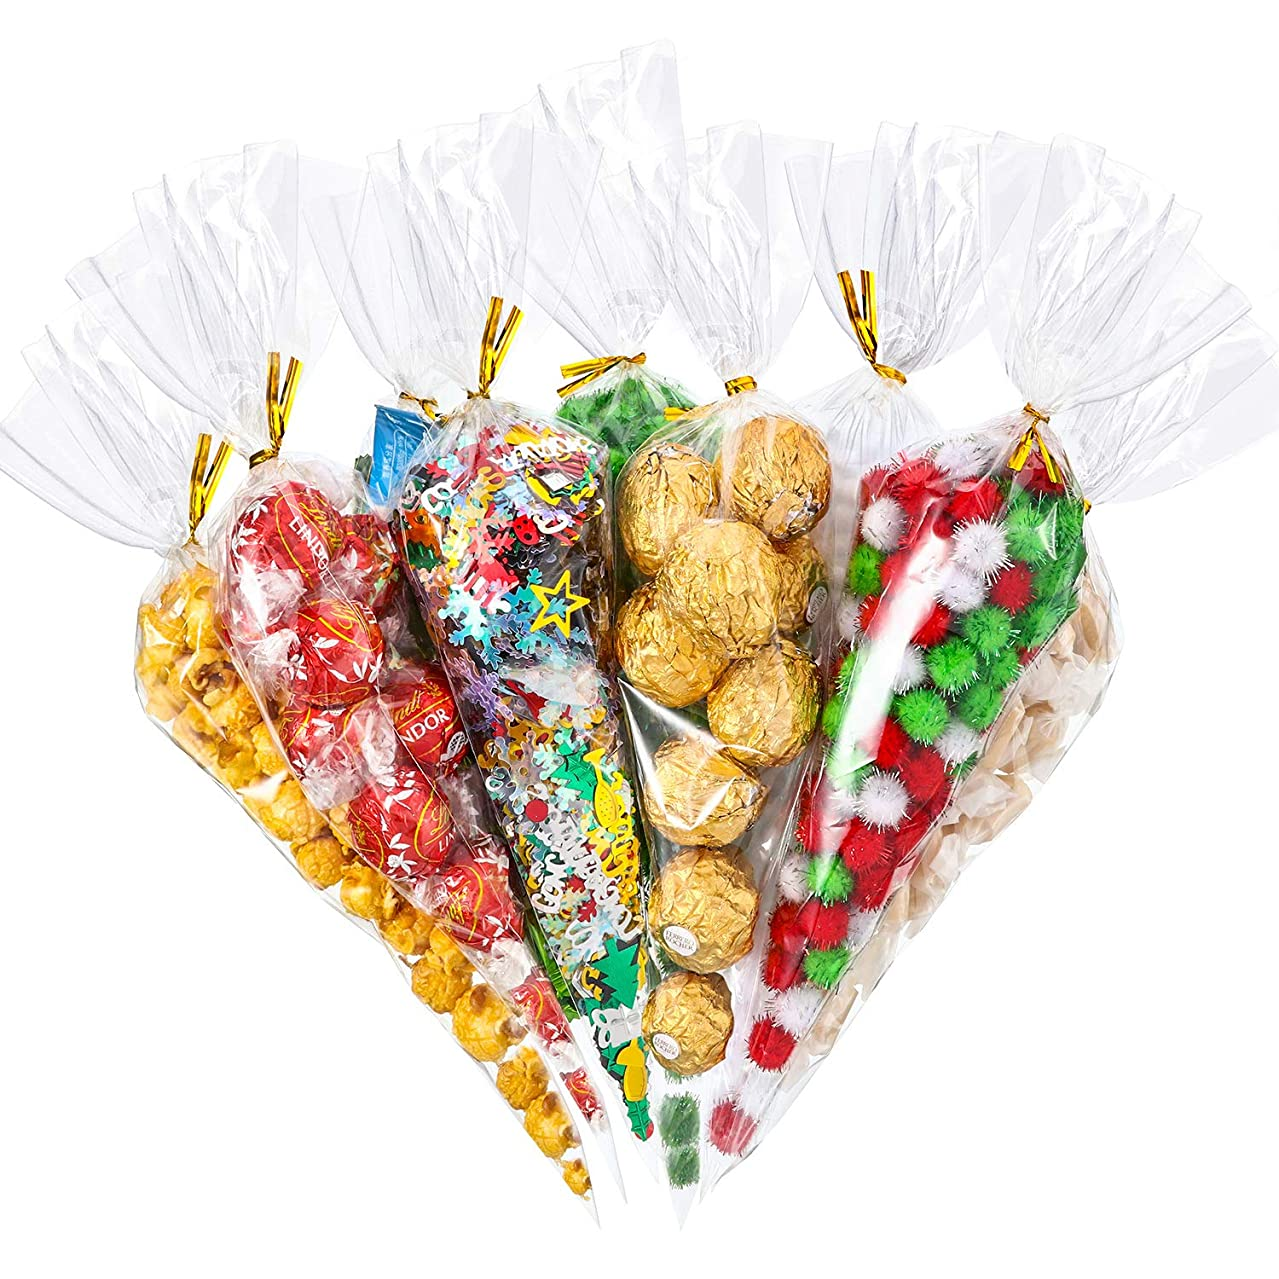 Tatuo 100 Counts Christmas Patterned Cone Cellophane Bags Treat Candy Bags with 100 Pieces Gold Twist Ties for Christmas Party Favor (Color E)